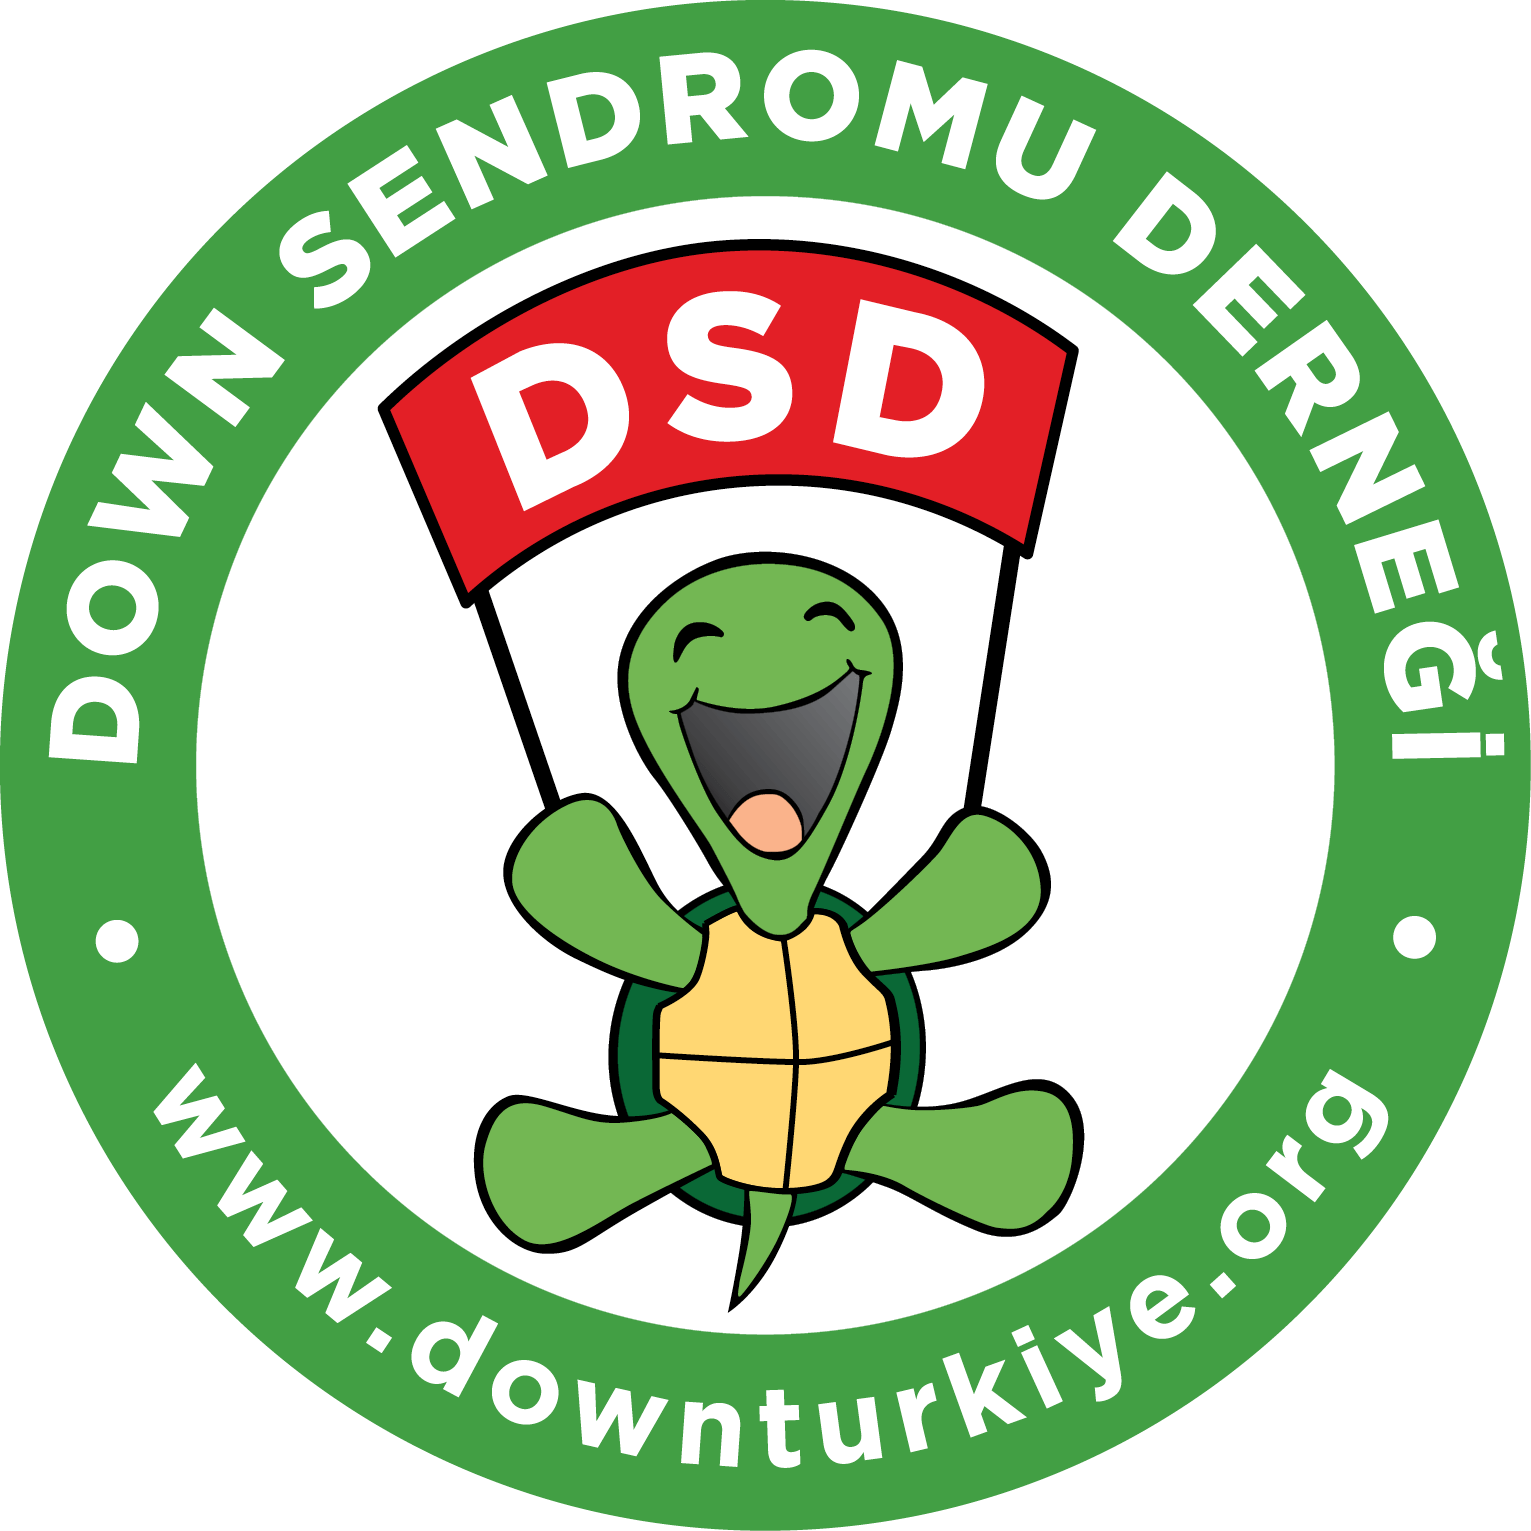 Down Sendromu Derneği - Down Syndrome Association